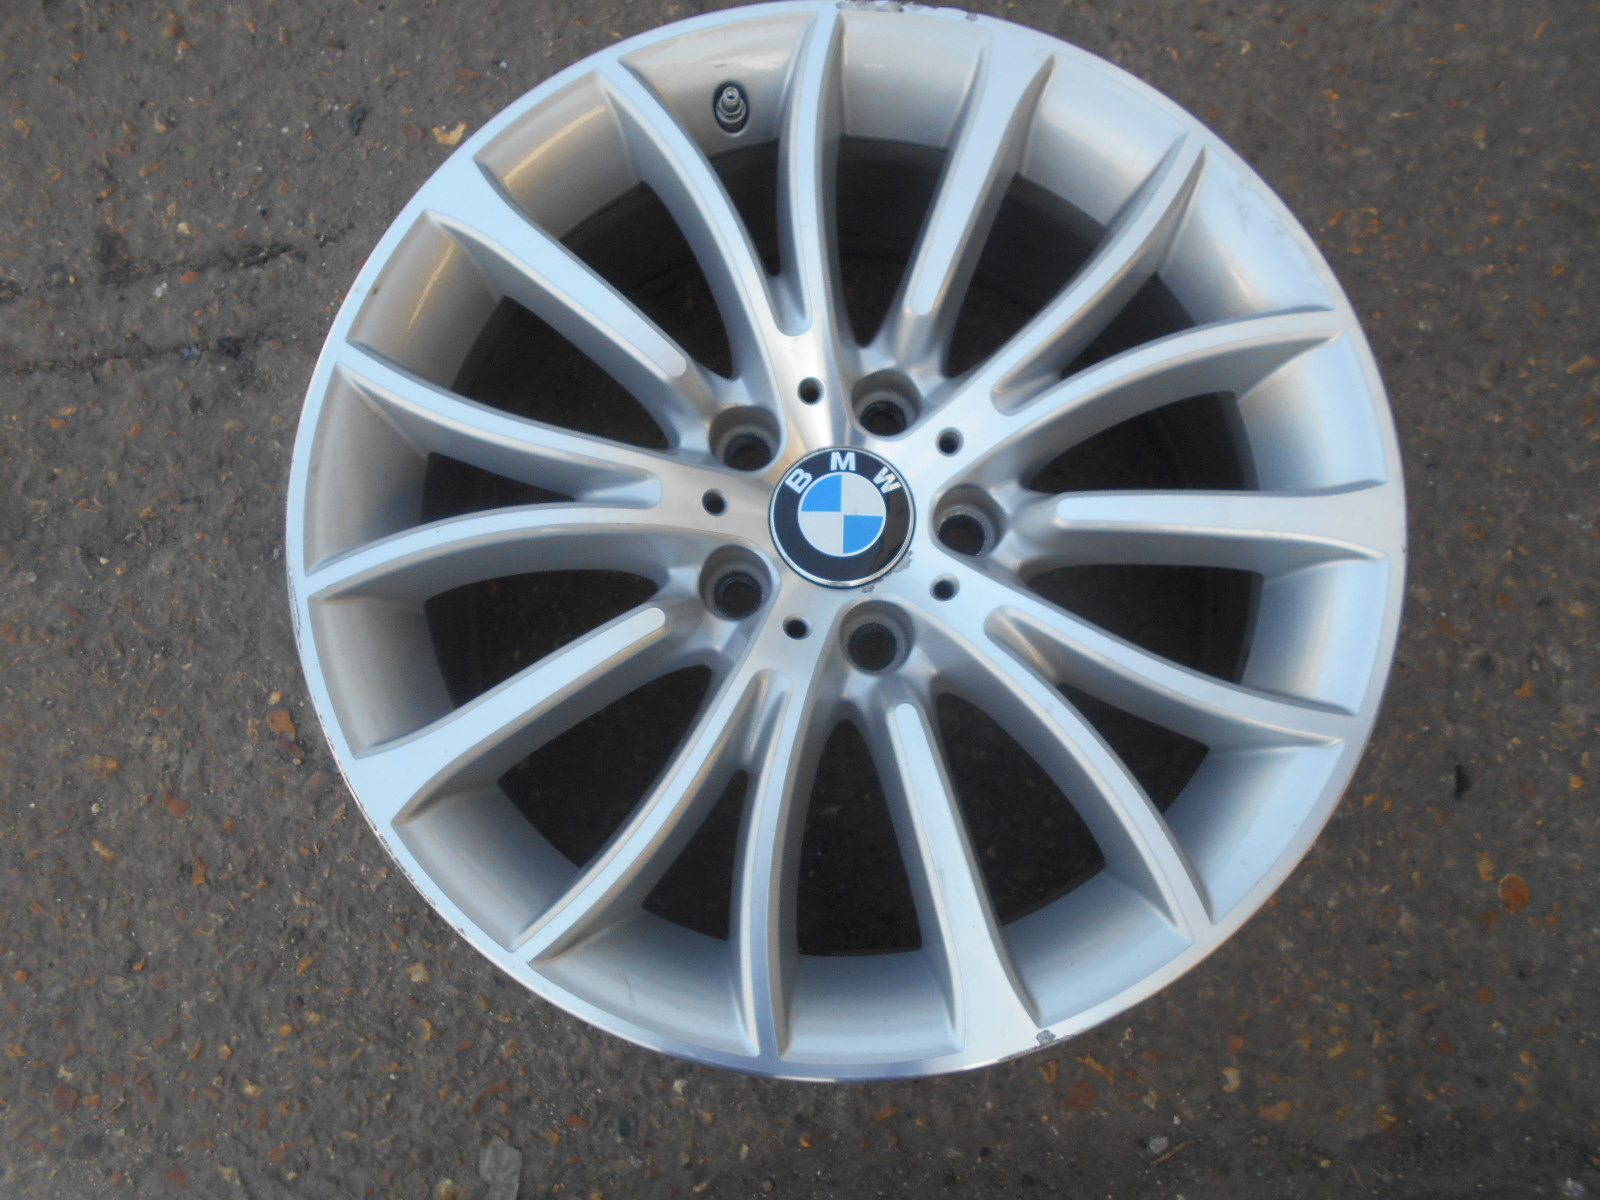 styles style w images oem forums attachment rim staggered attached p showthread zero ferric grey bmw